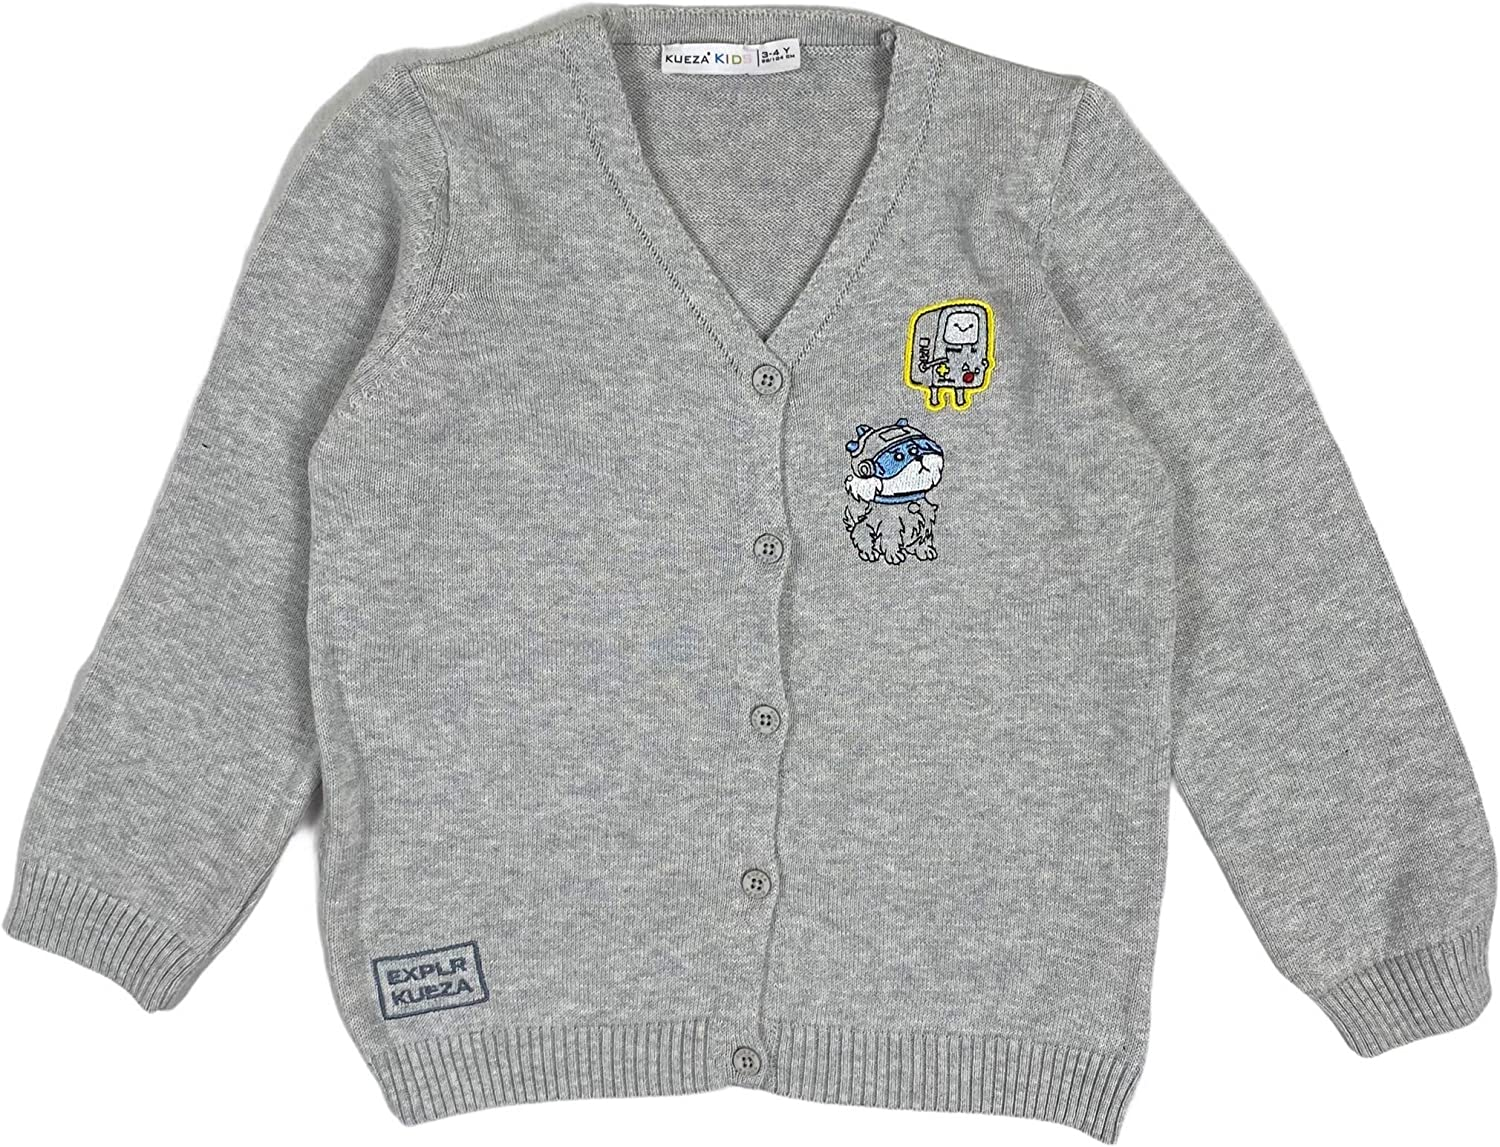 Kueza Baby /& Toddler Boys Knitwear EXPLR Embroidered Button-Down Grey V Neck Cardigan 6mths-5yrs 100/% Cotton